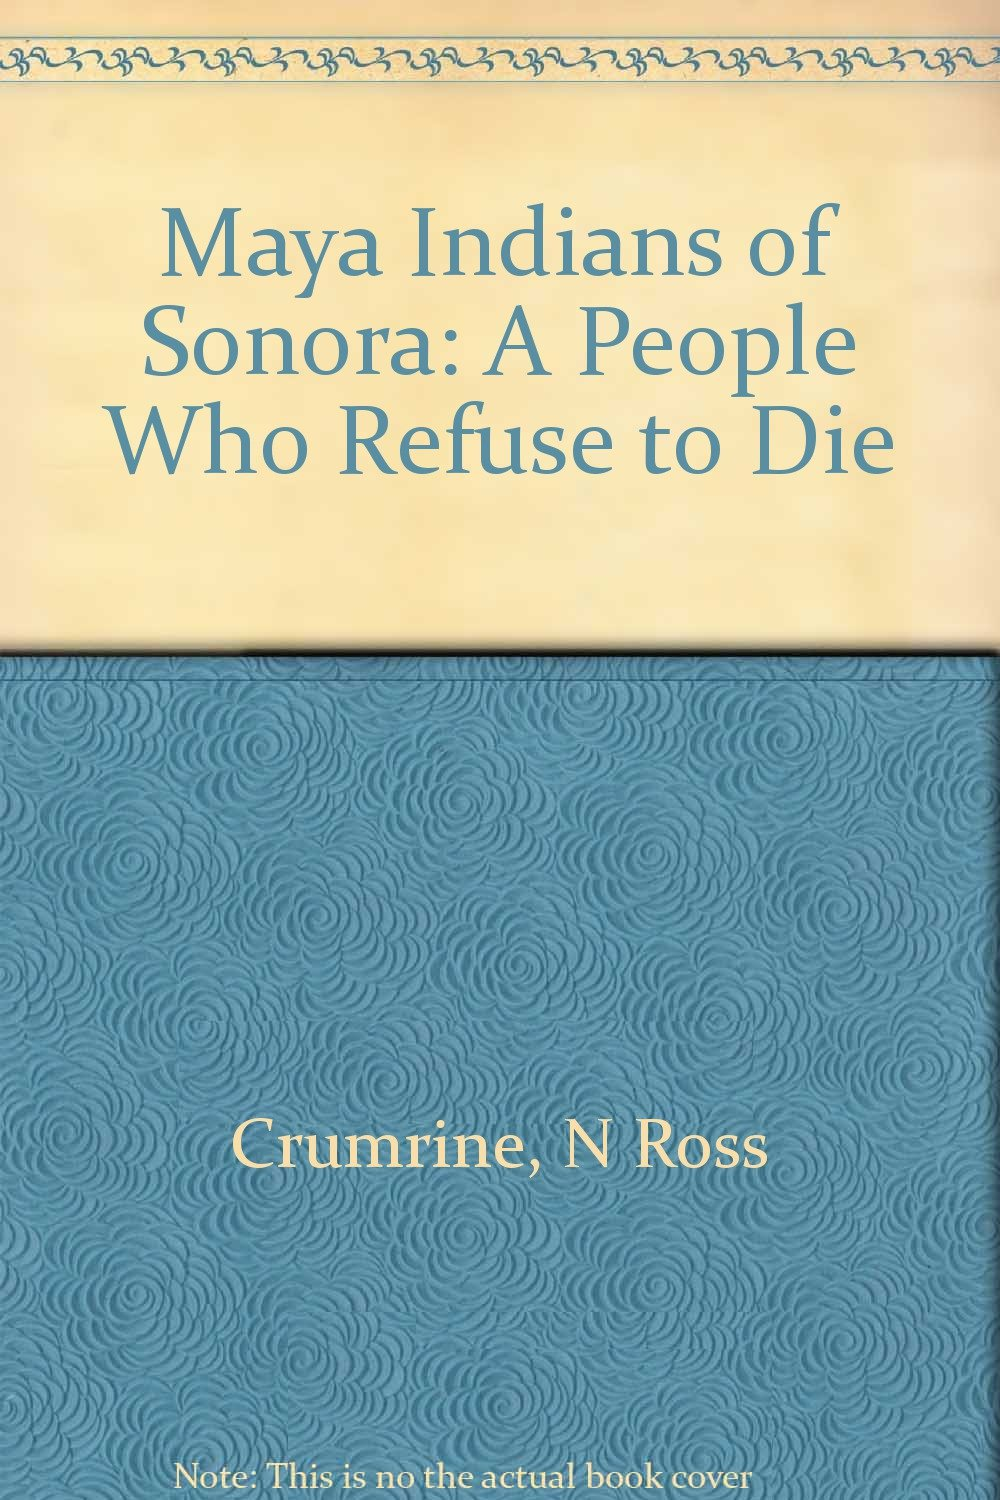 the-mayo-indians-of-sonora-a-people-who-refuse-to-die